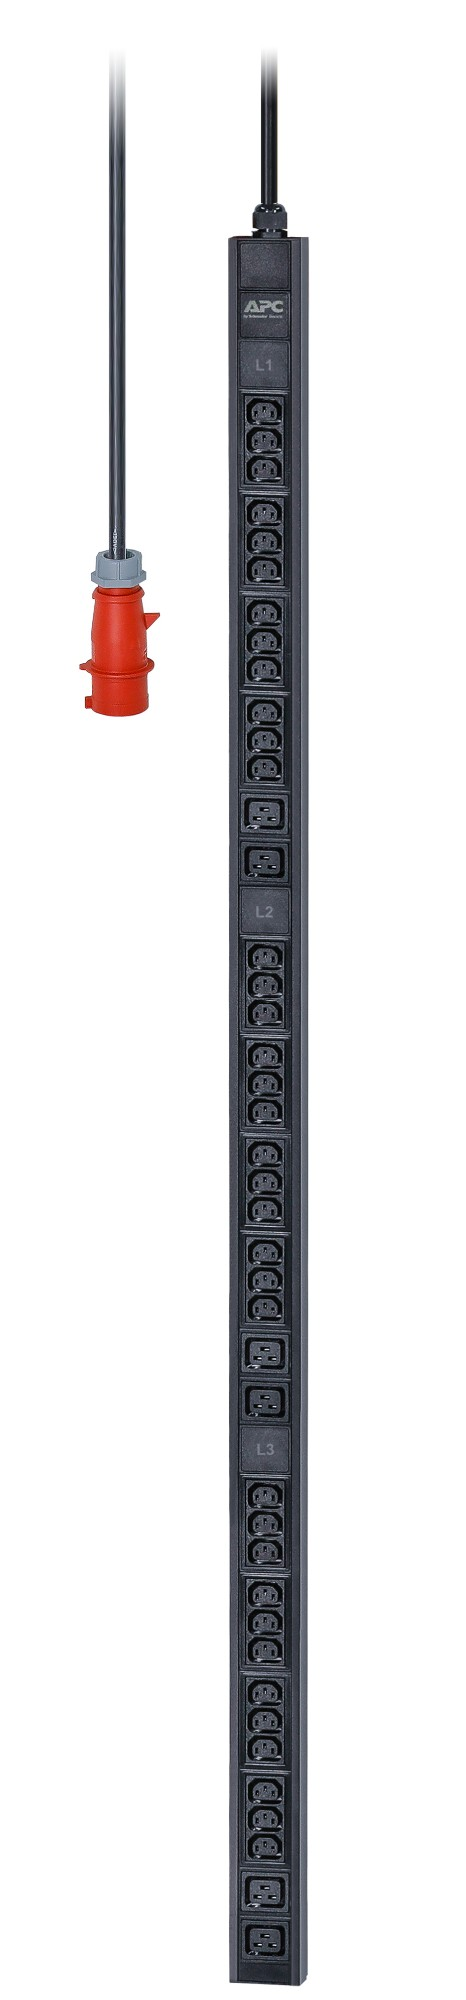 APC EPDU1216B power distribution unit (PDU) 0U Black 42 AC outlet(s)